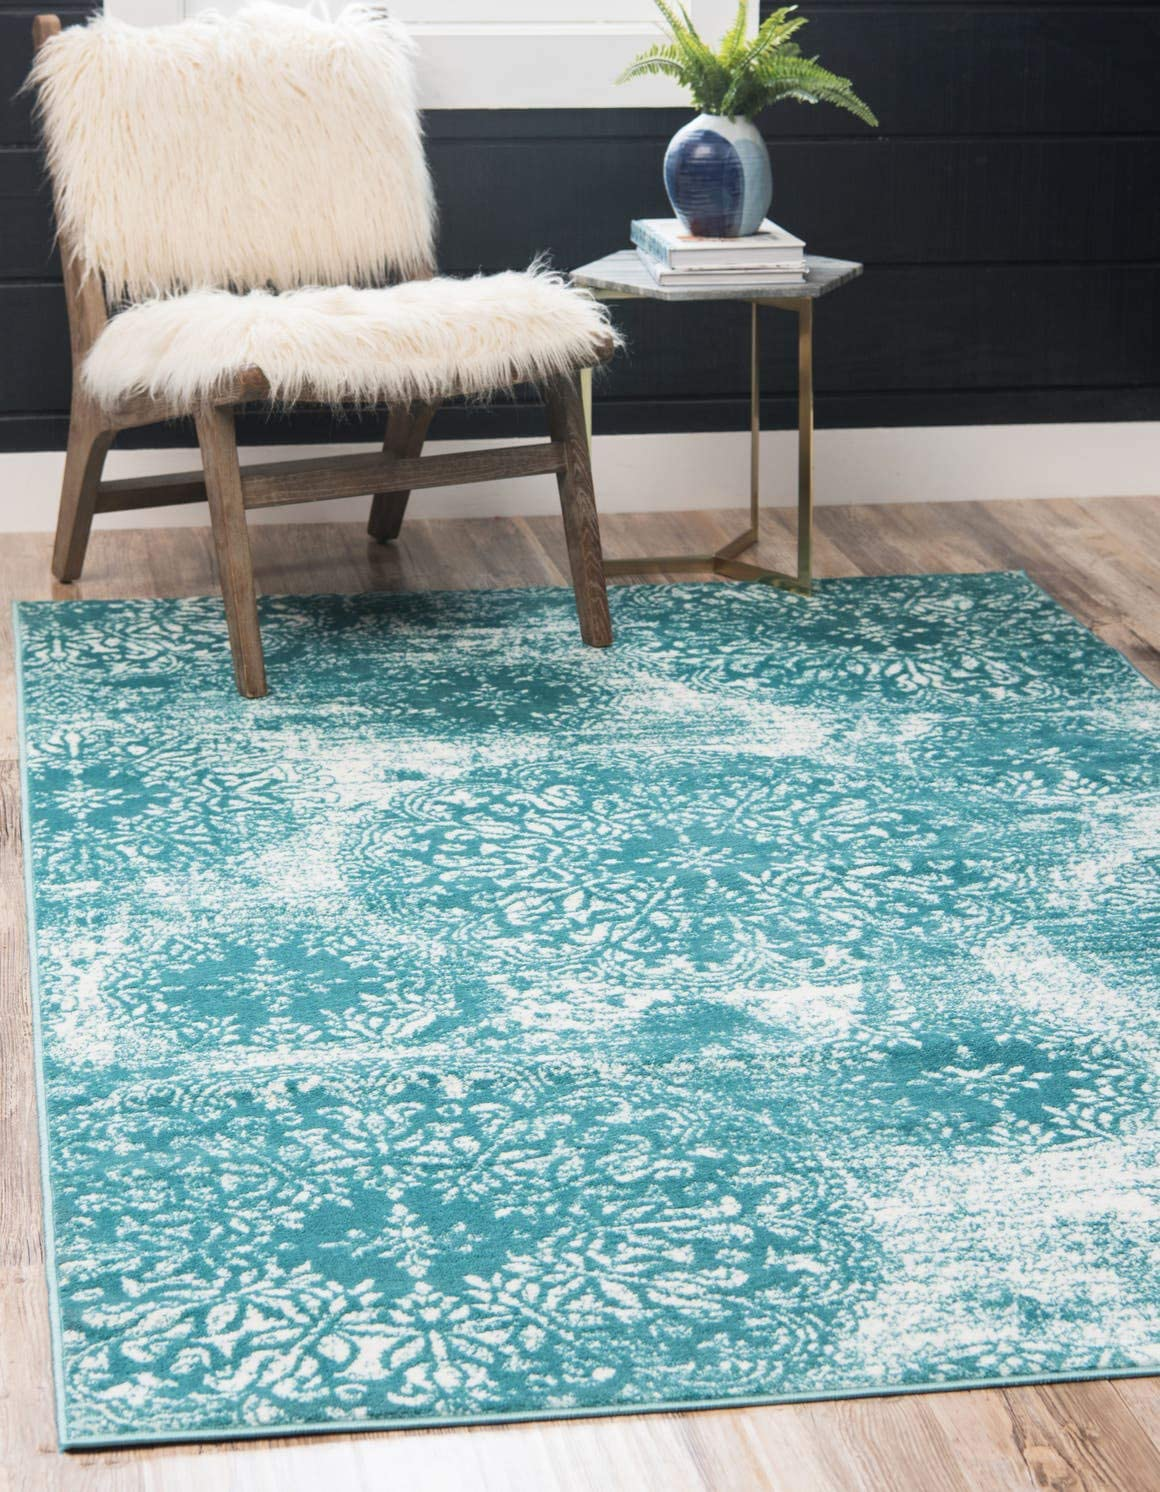 Unique Loom 3141567 Sofia Collection Traditional Vintage Turquoise Area Rug 2 2 x 3 0 , Rectangle